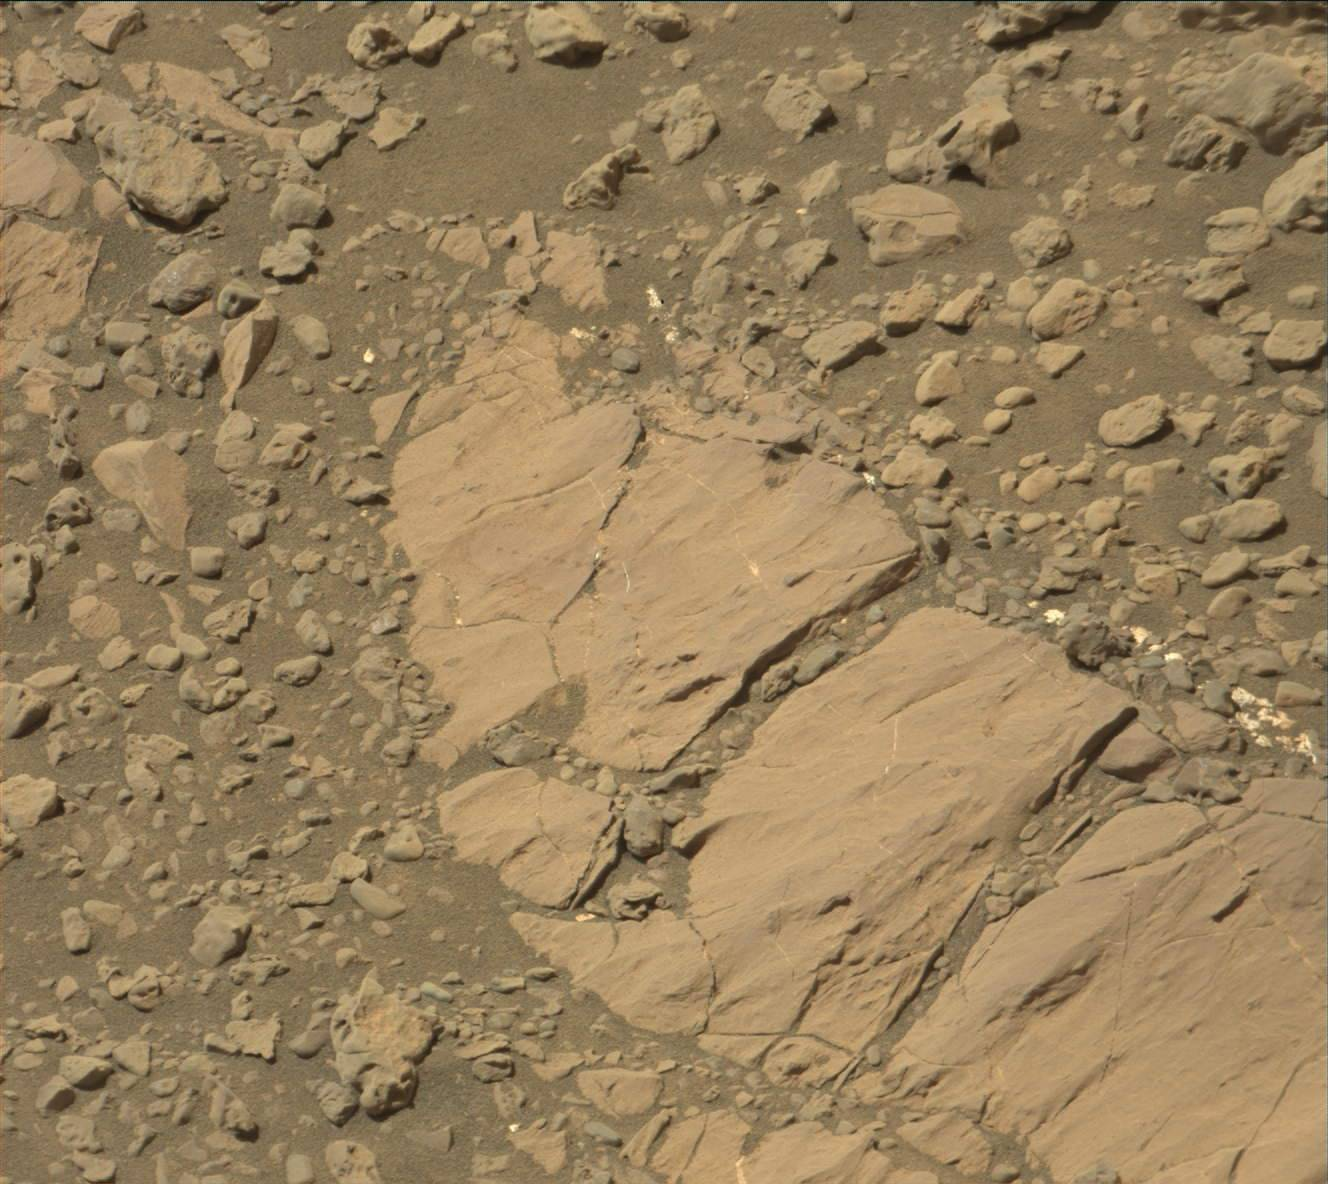 Sol 1875-1876: Sitting on the Boundary